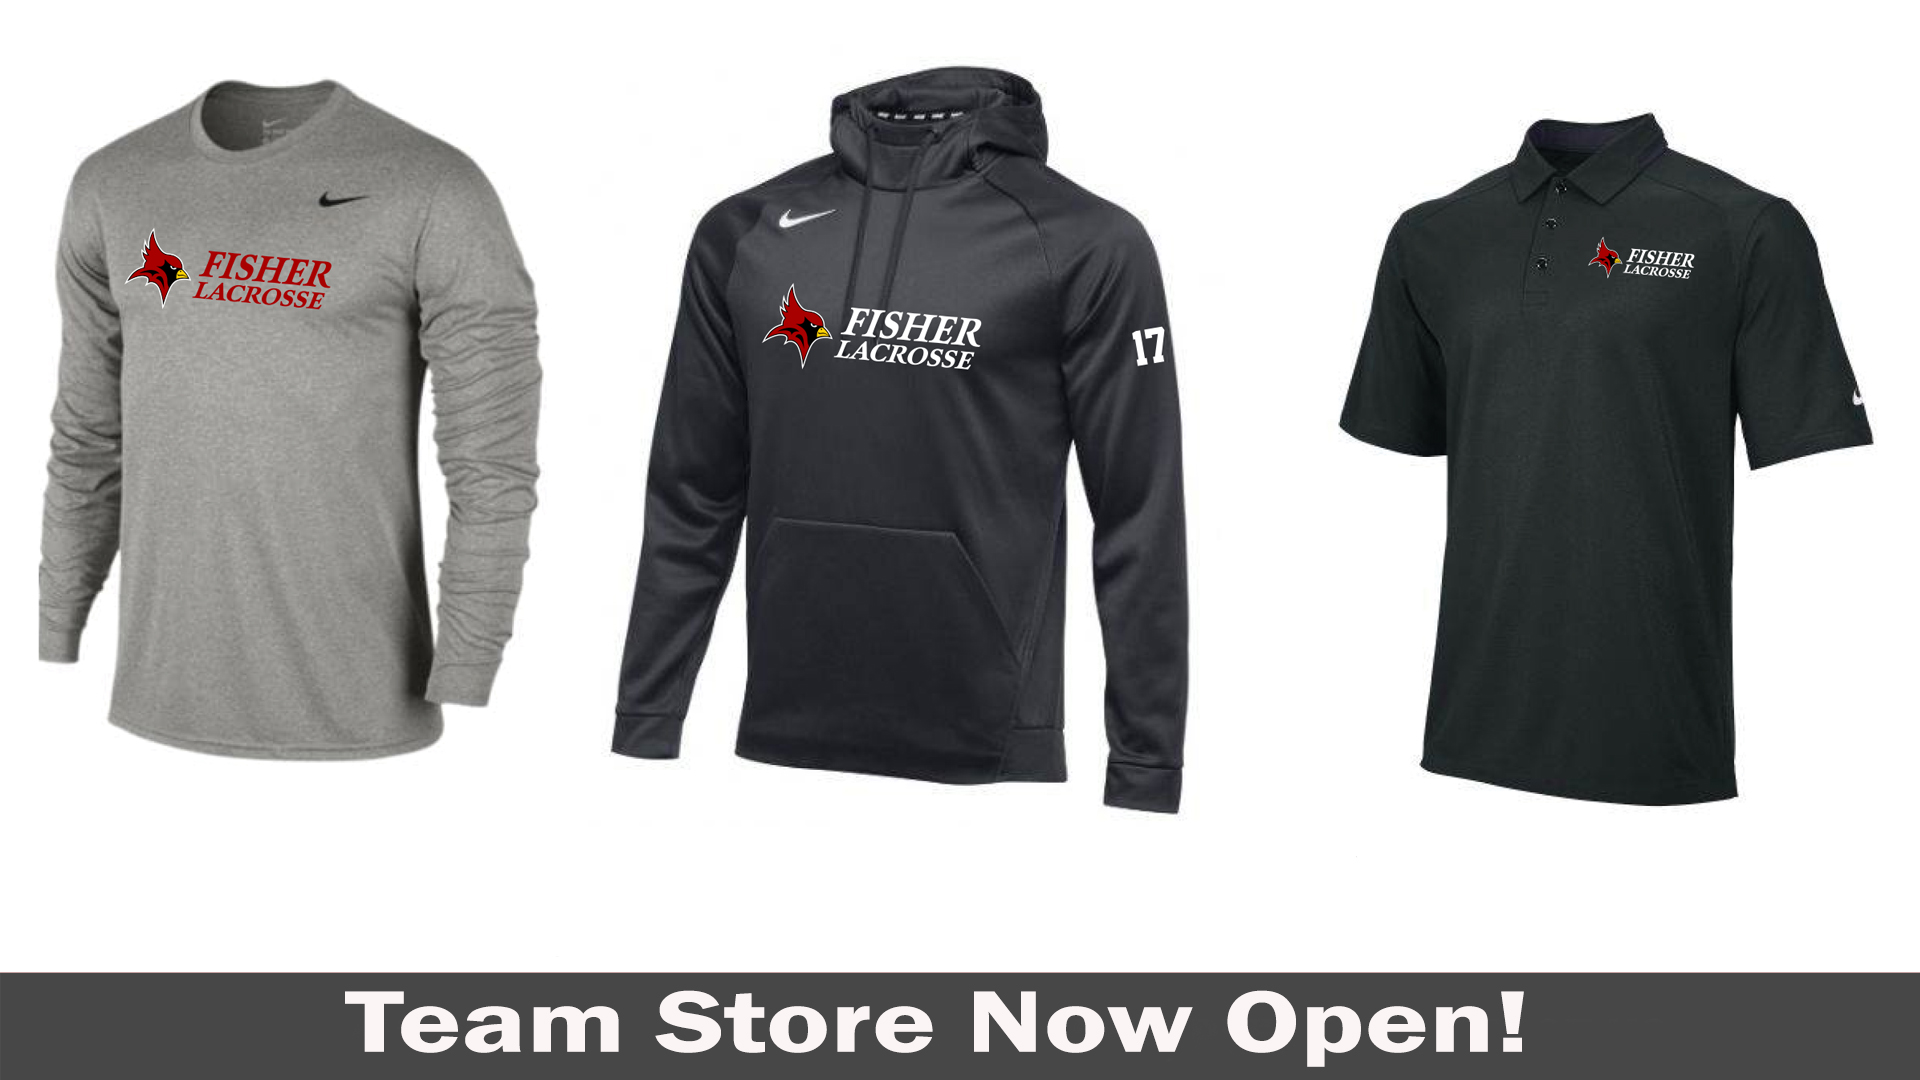 Men S Lacrosse Announces Team Store Now Open St John Fisher